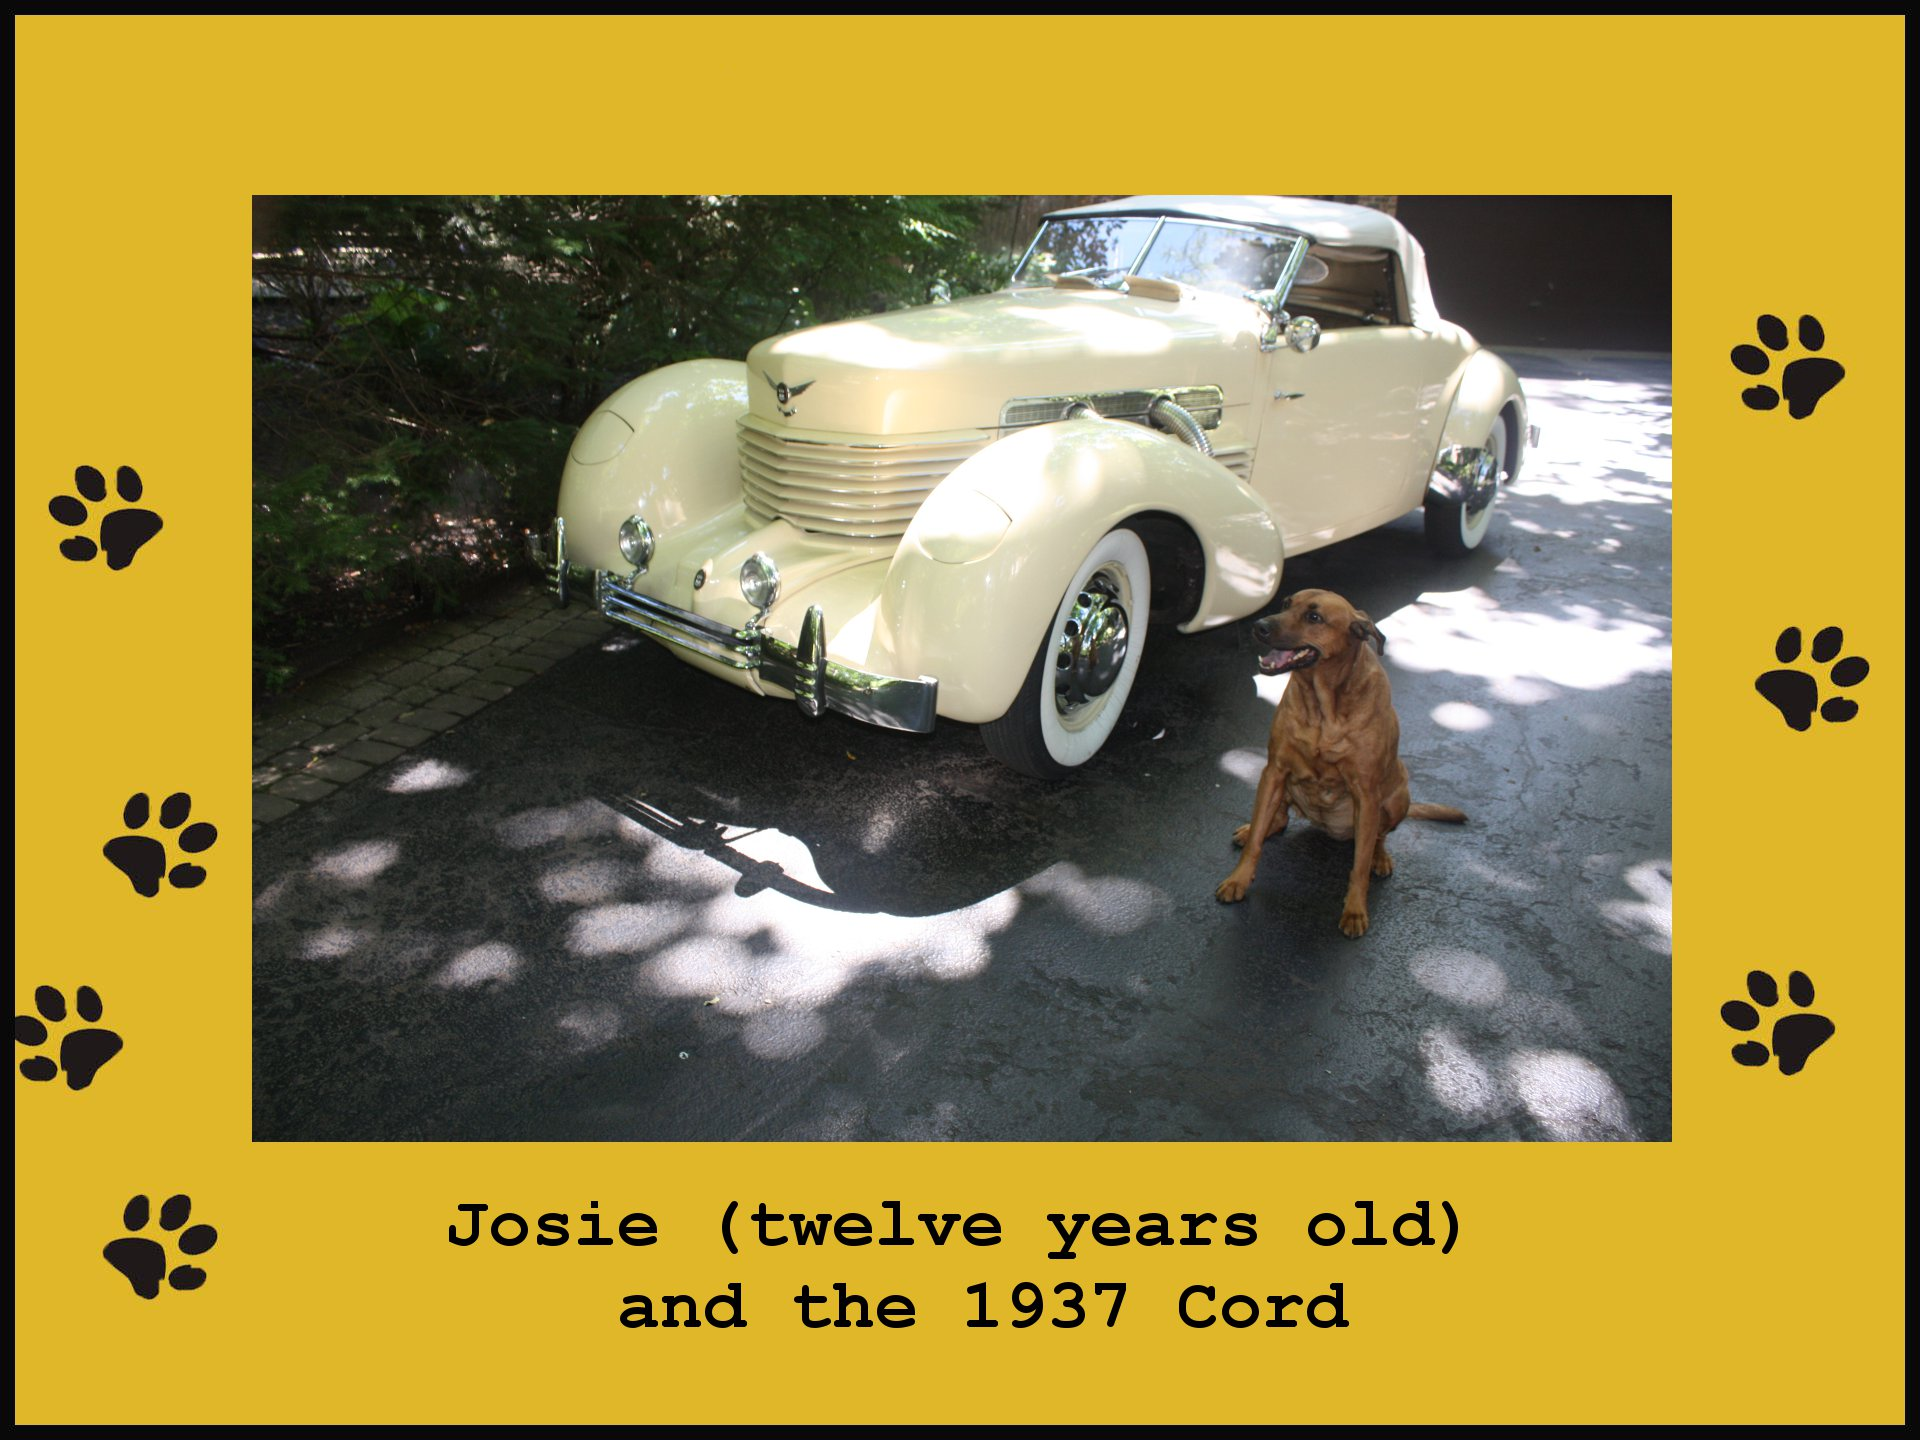 Josie and 1937 Cord (323K)